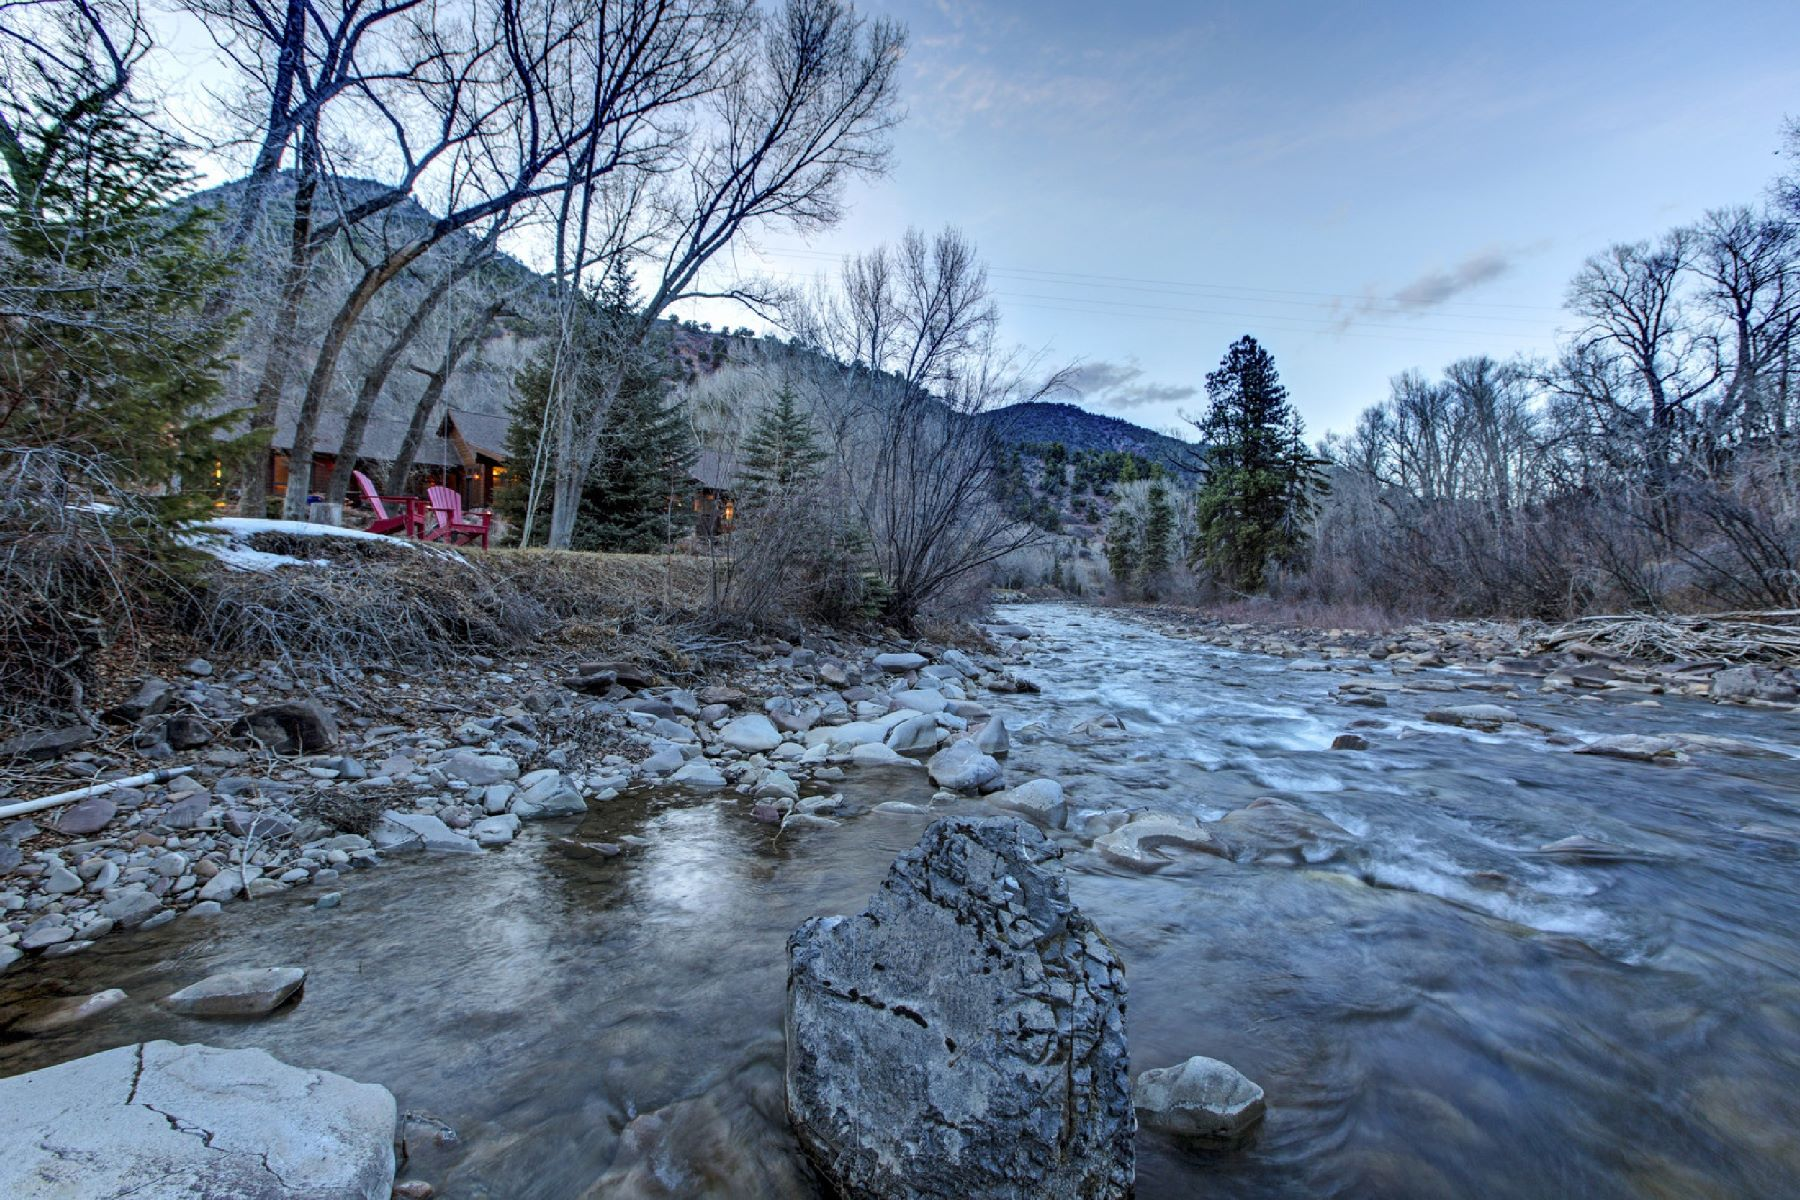 Single Family Home for Sale at Sanctuary on the Crystal River 11258 Highway 133, Carbondale, Colorado, 81623 United States